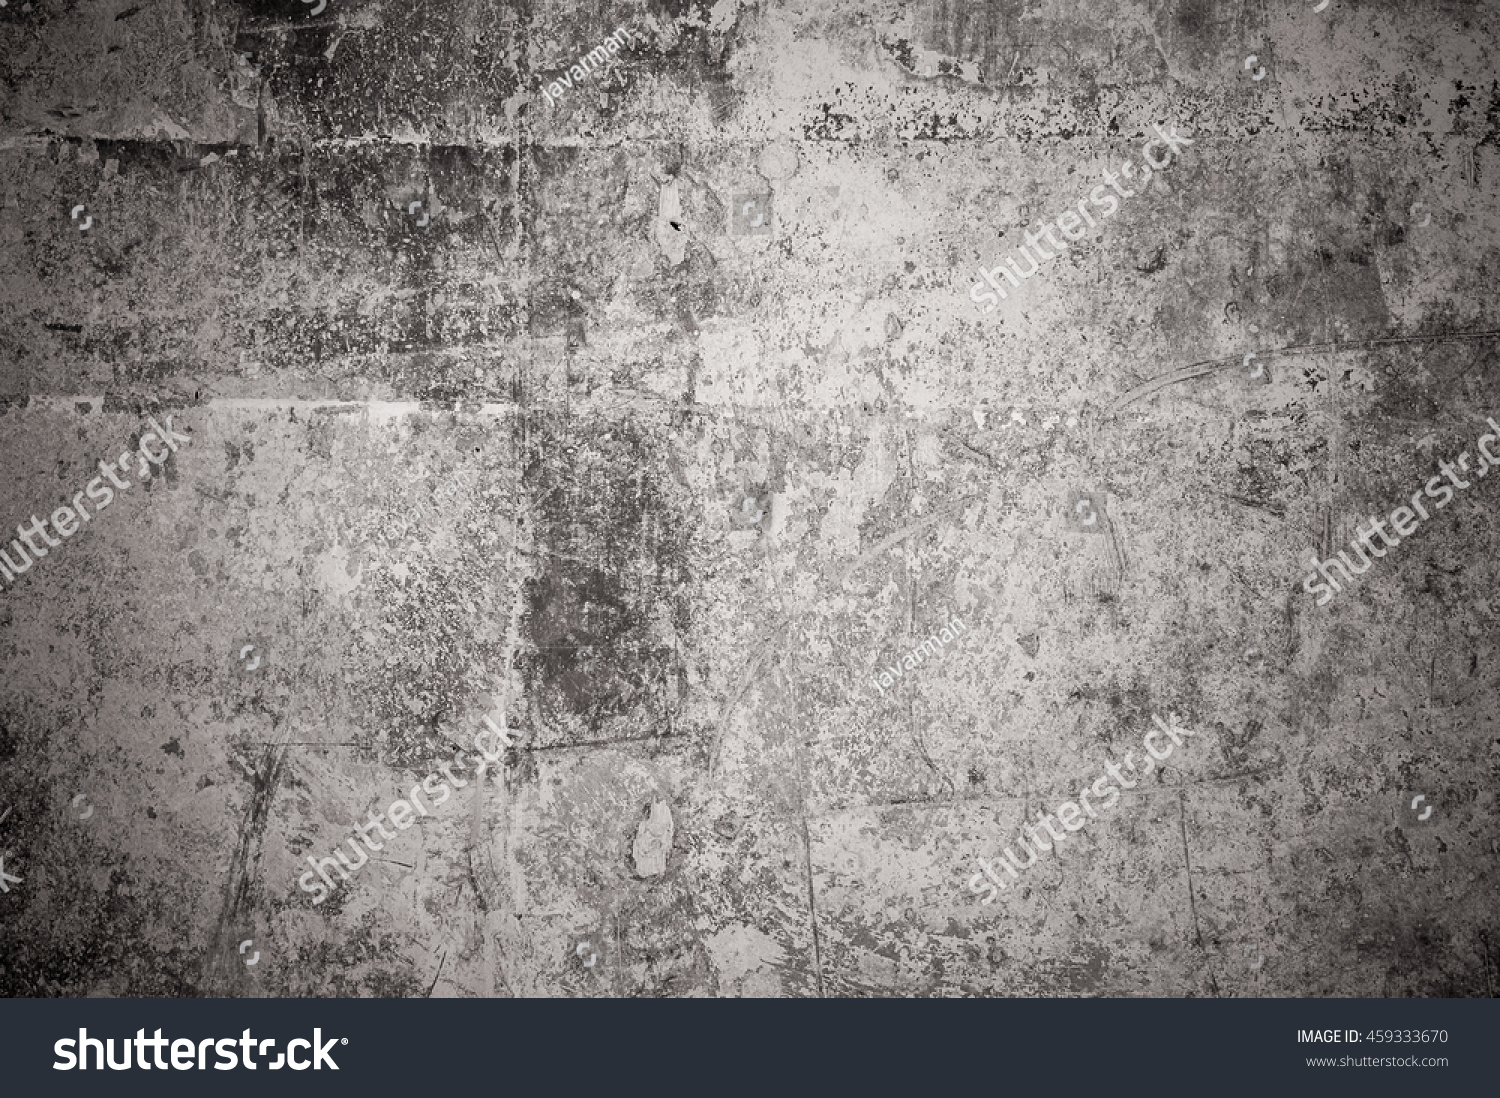 grunge wall, highly detailed textured background #459333670